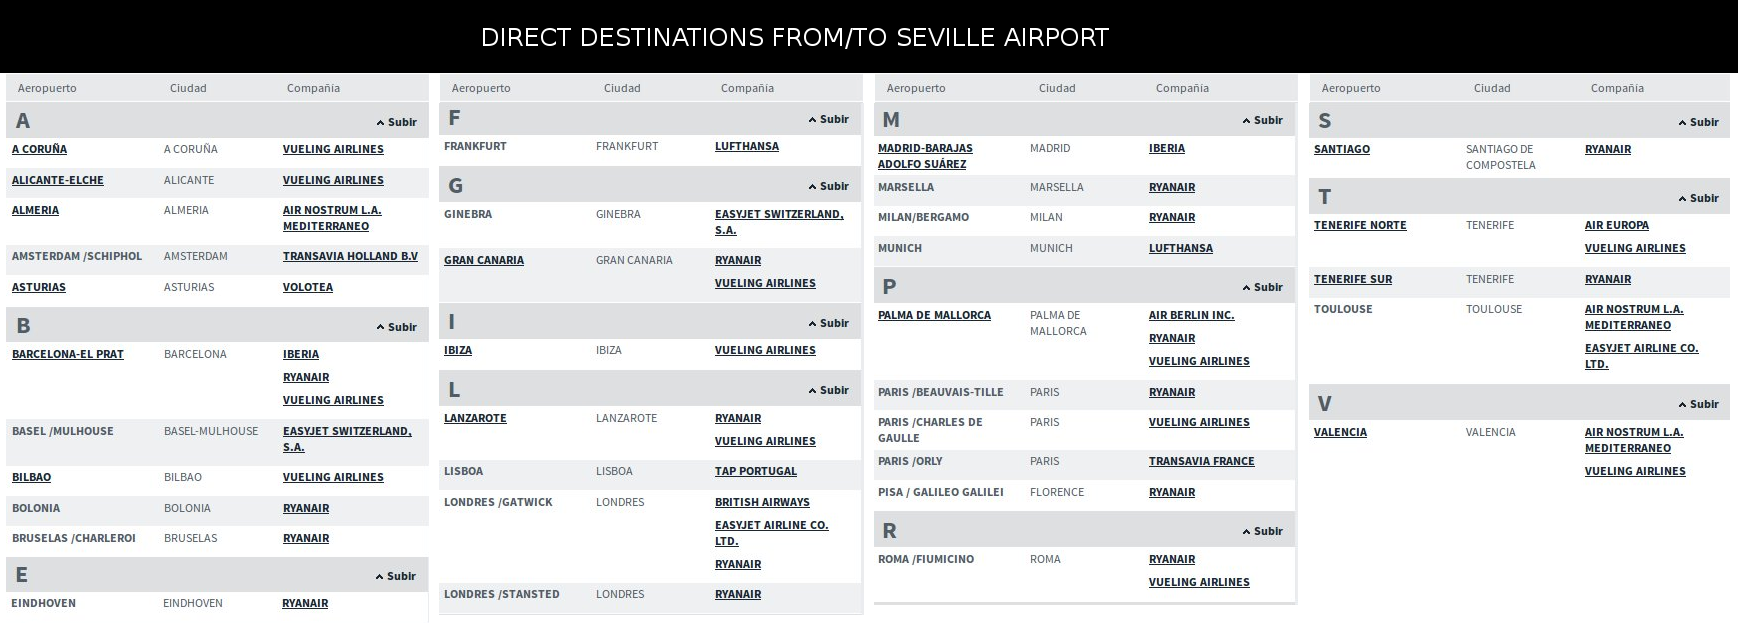 List of direct destinations to/from Seville